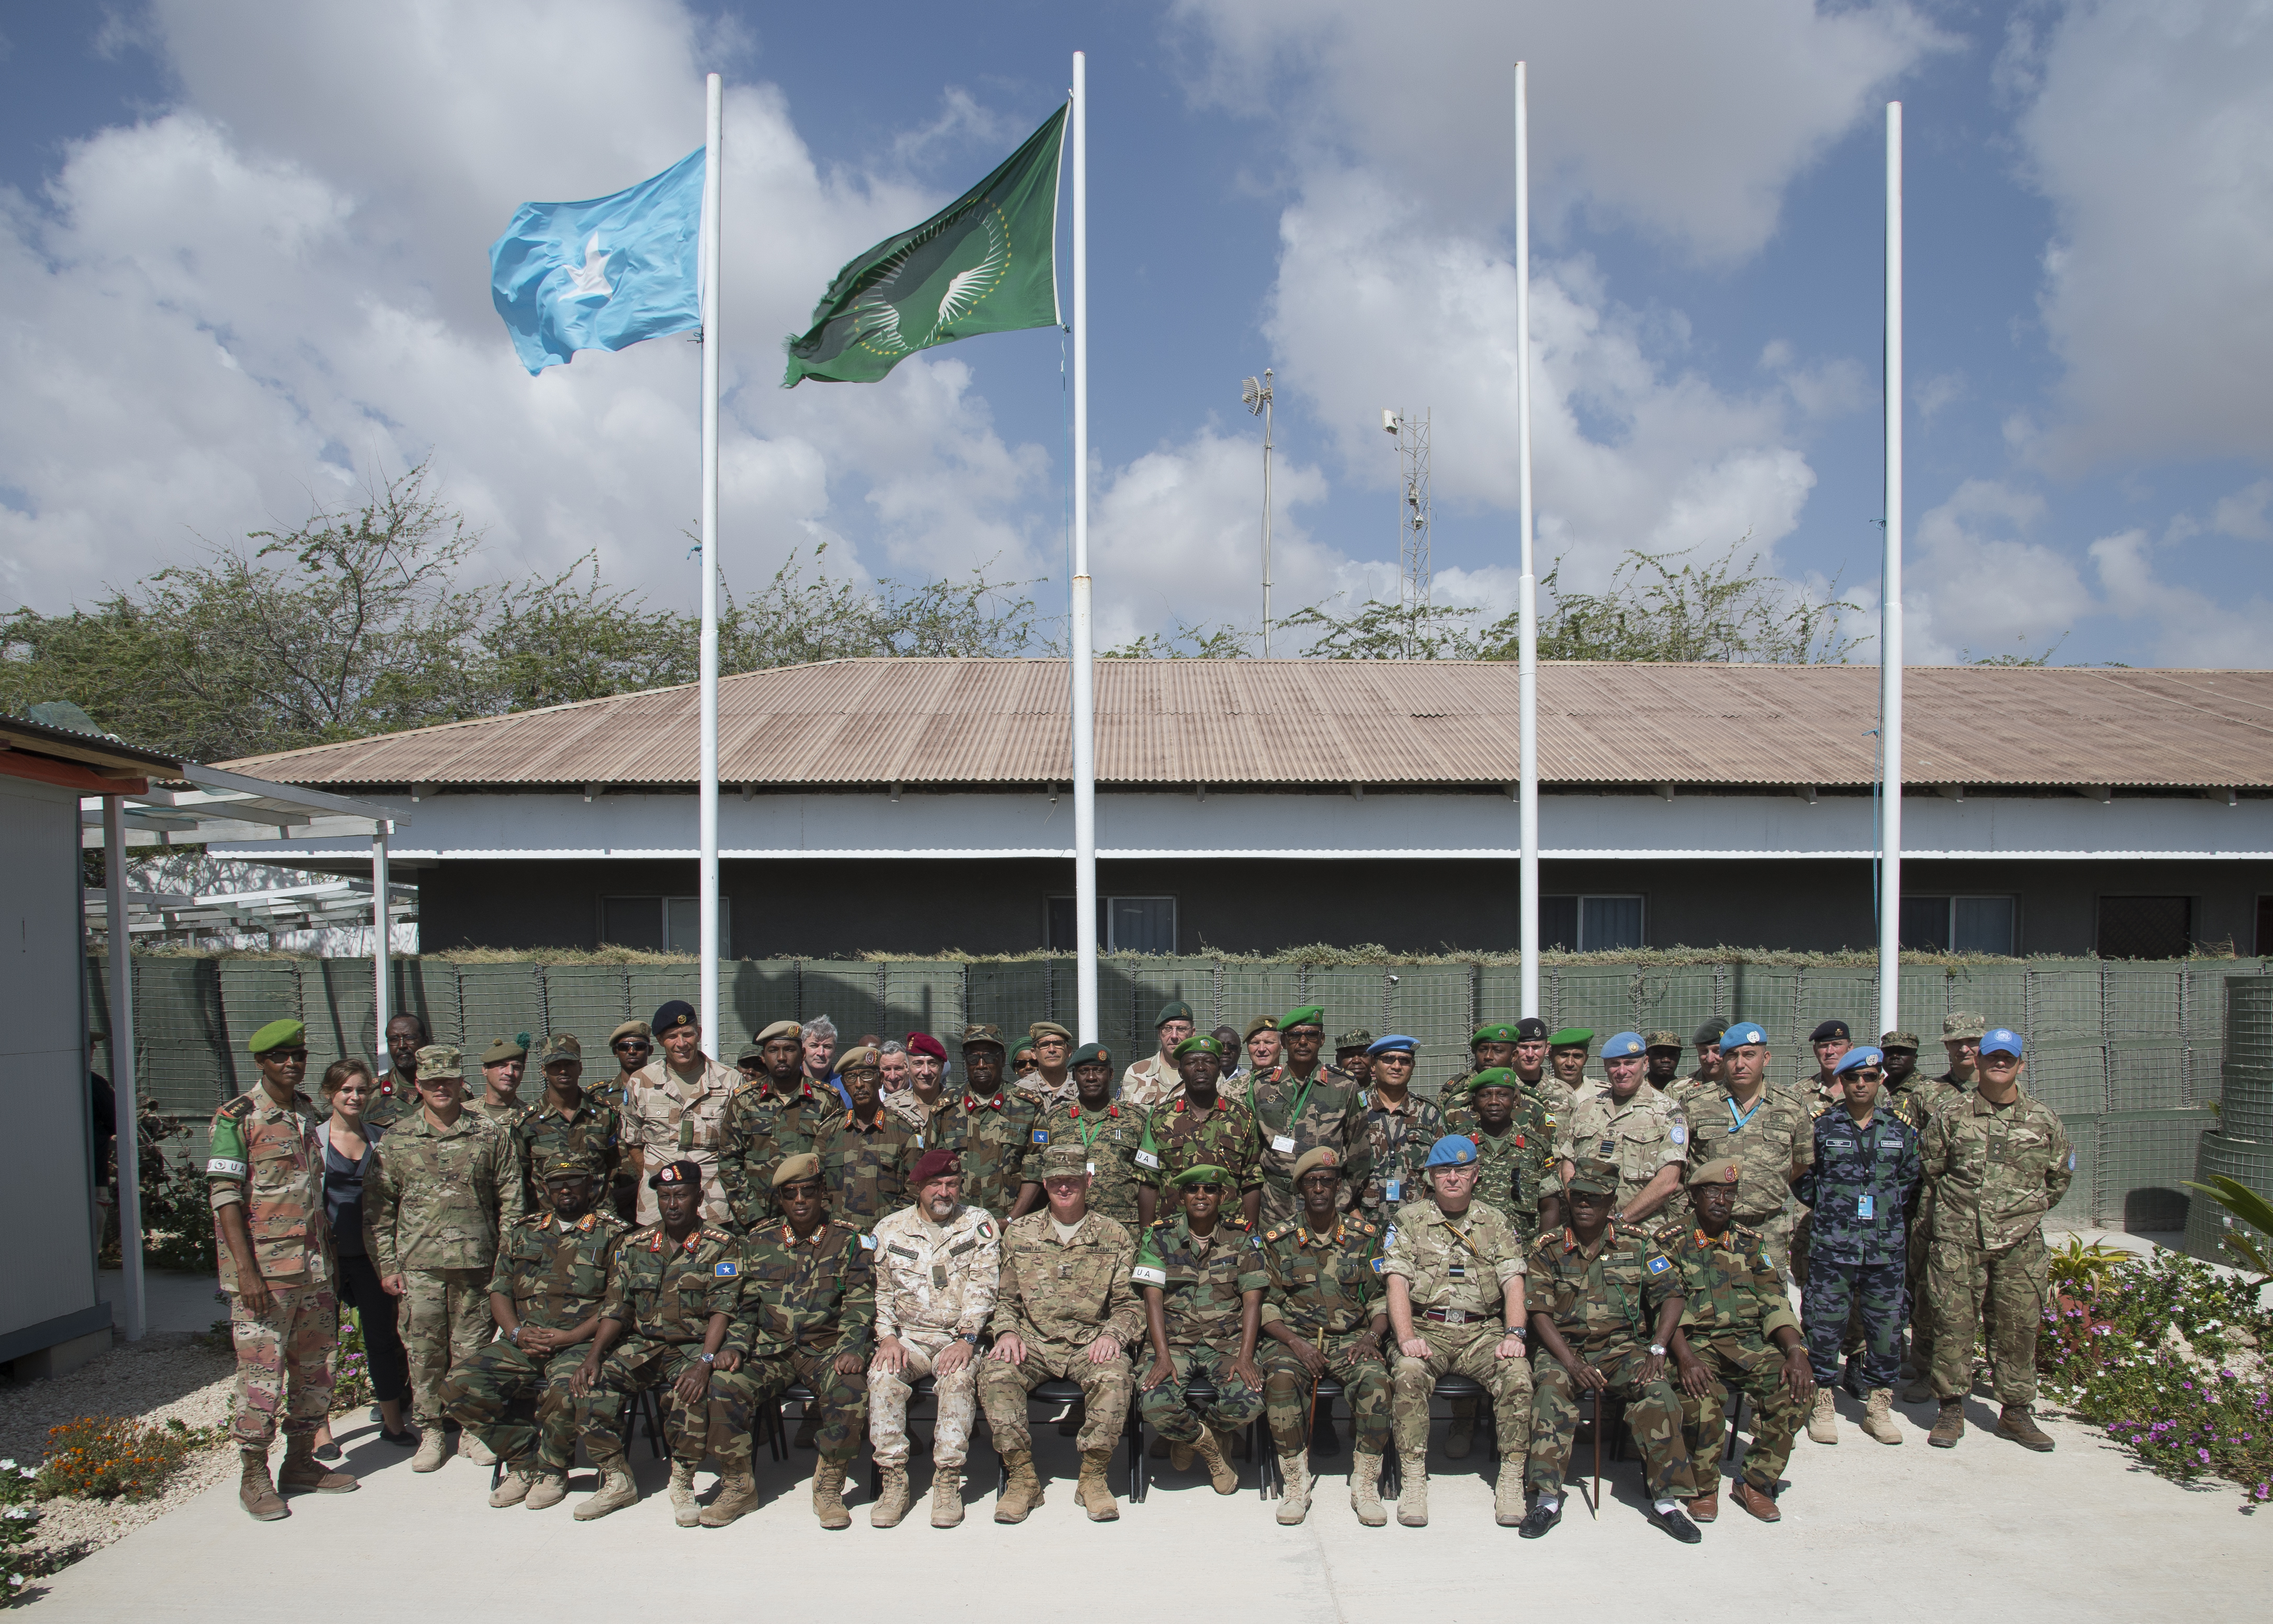 Leaders of the Somali National Army gather with international military and civilian officials for the SNA Symposium in downtown Mogadishu, Jan. 11, 2017. More than 60 participants attended the two-day event, including representatives from Denmark, Germany, Italy, Somalia, Turkey, Uganda, the United Arab Emirates, United Kingdom and the United States of America. Also in attendance, were representatives from international organizations such as the United Nations, European Union Training Mission, and the African Union Mission in Somalia. (Photo by Master Sgt. Paul Gorman/Released)